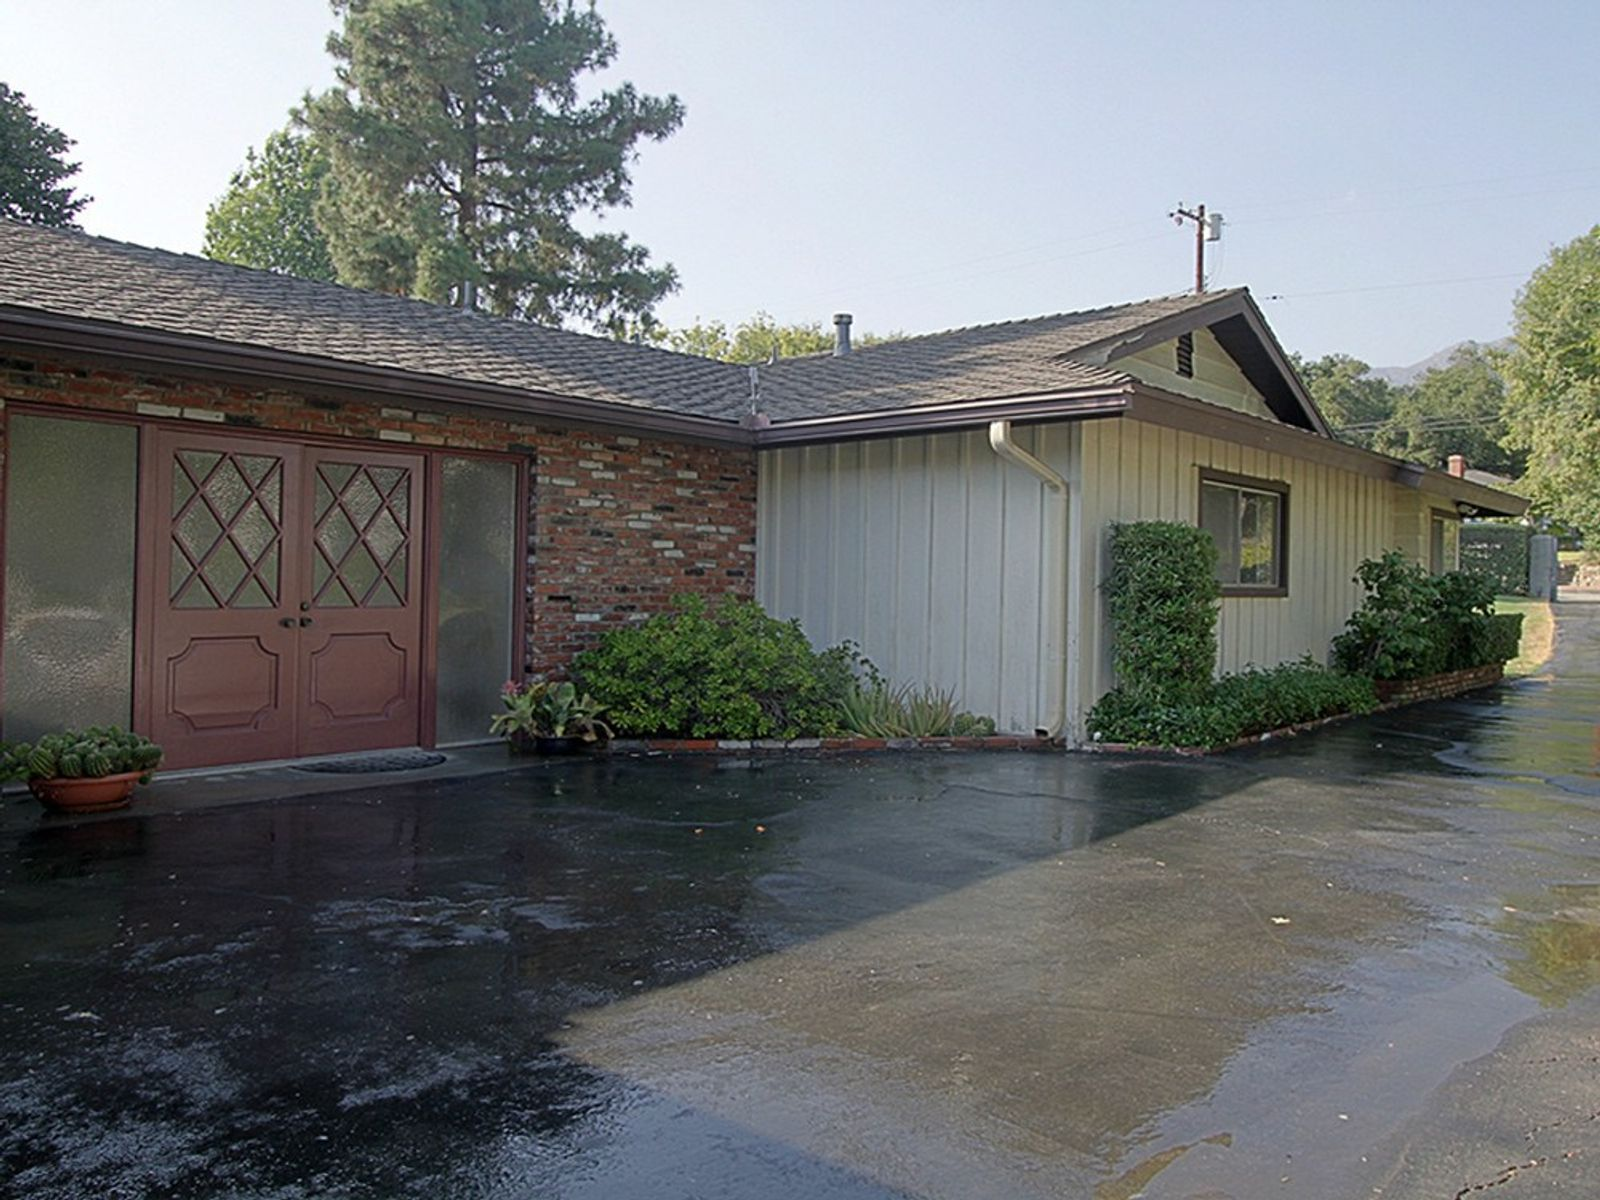 Sierra Madre Classic, Sierra Madre CA Single Family Home - Pasadena Real Estate